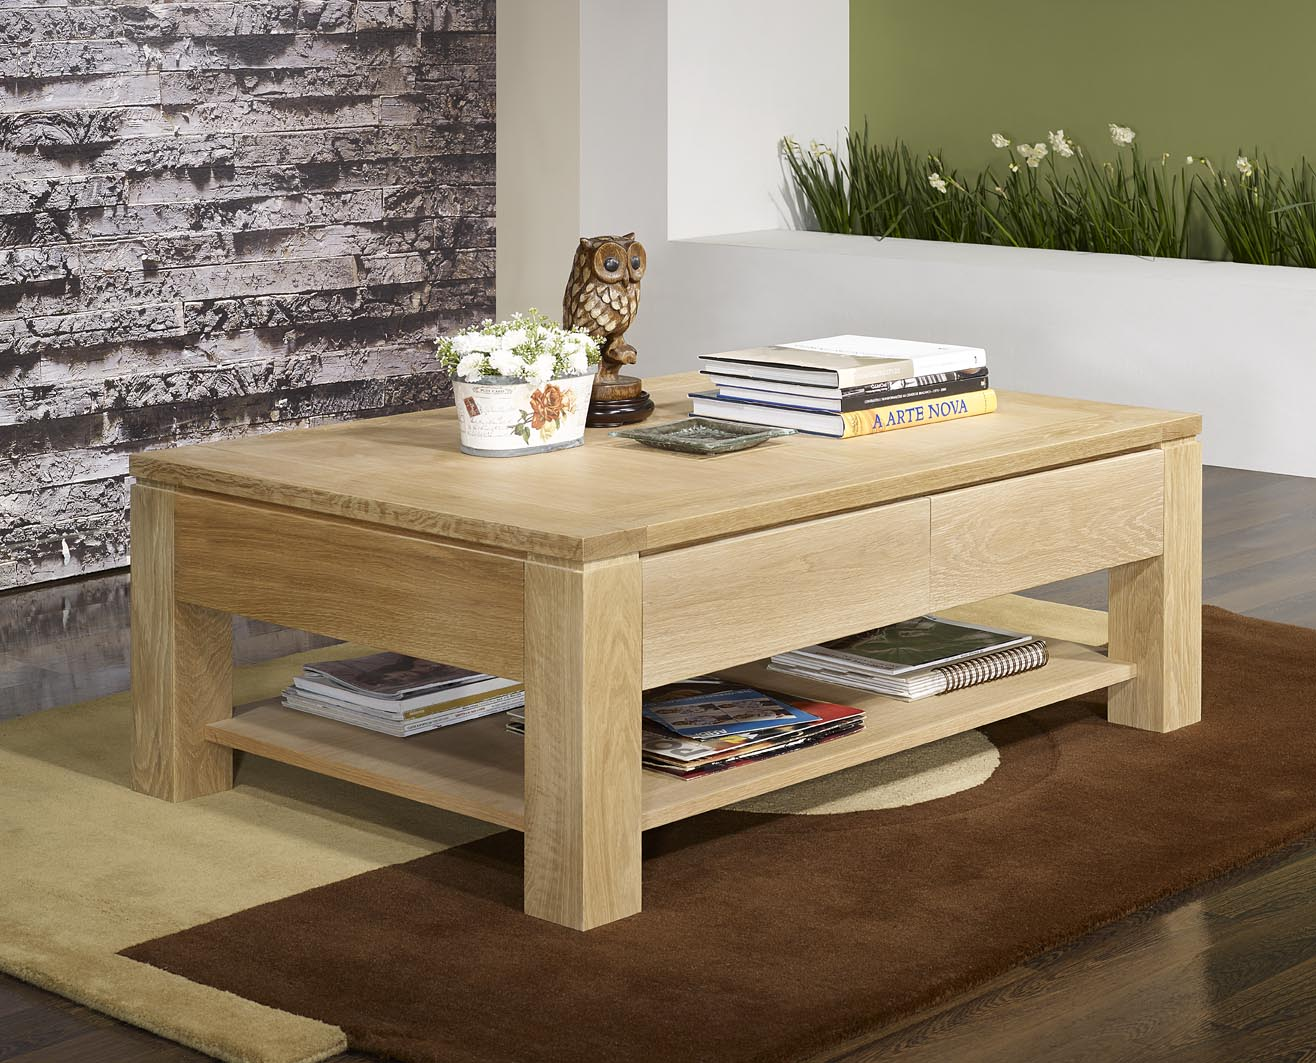 Table basse jean en ch ne massif ligne contemporaine finition ch ne bross largeur 60 cm - Table basse en chene ...